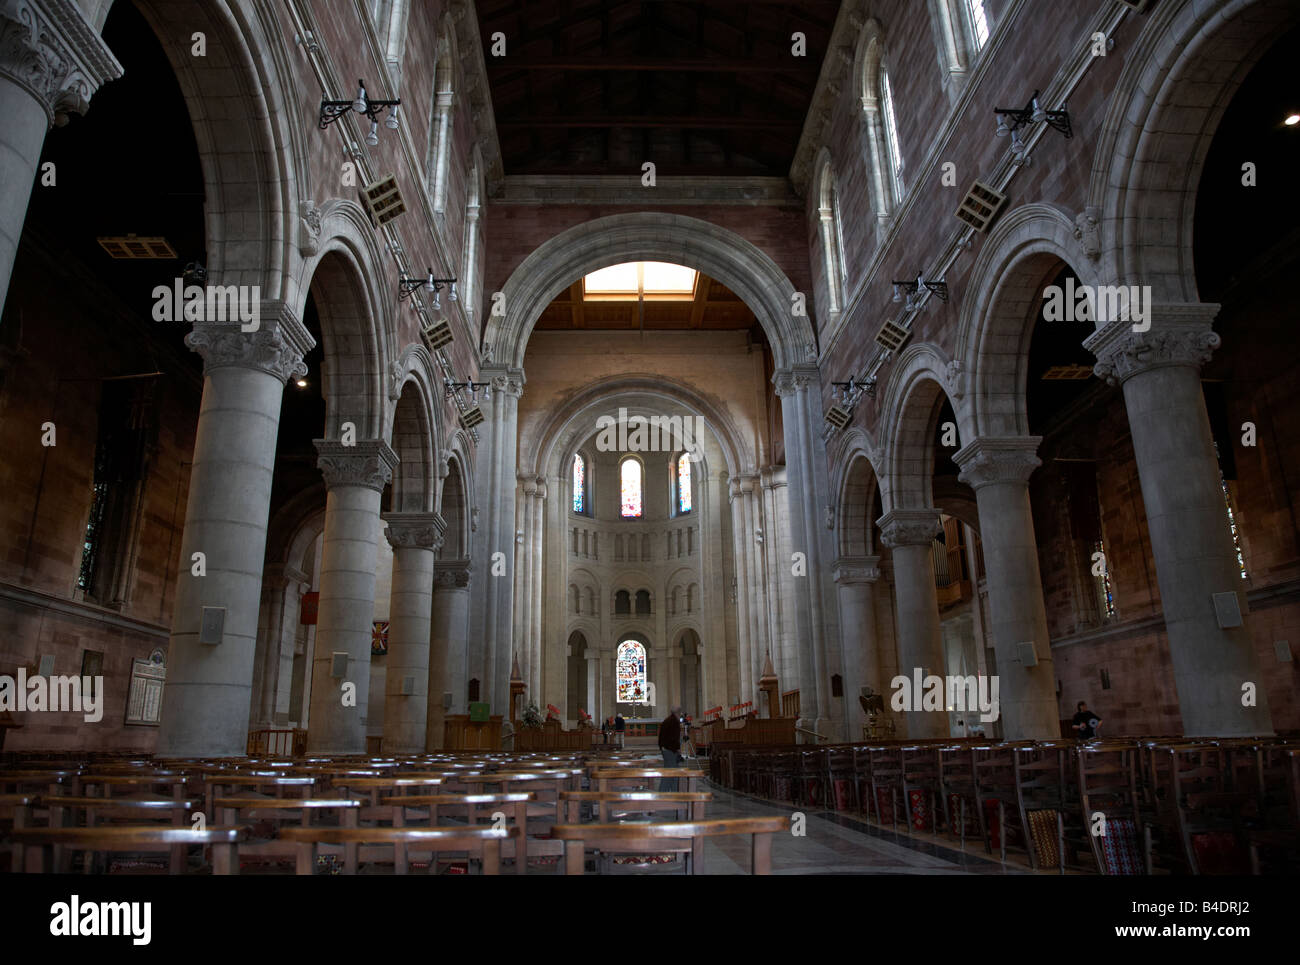 St Annes Cathedral belfast city centre northern ireland uk - Stock Image